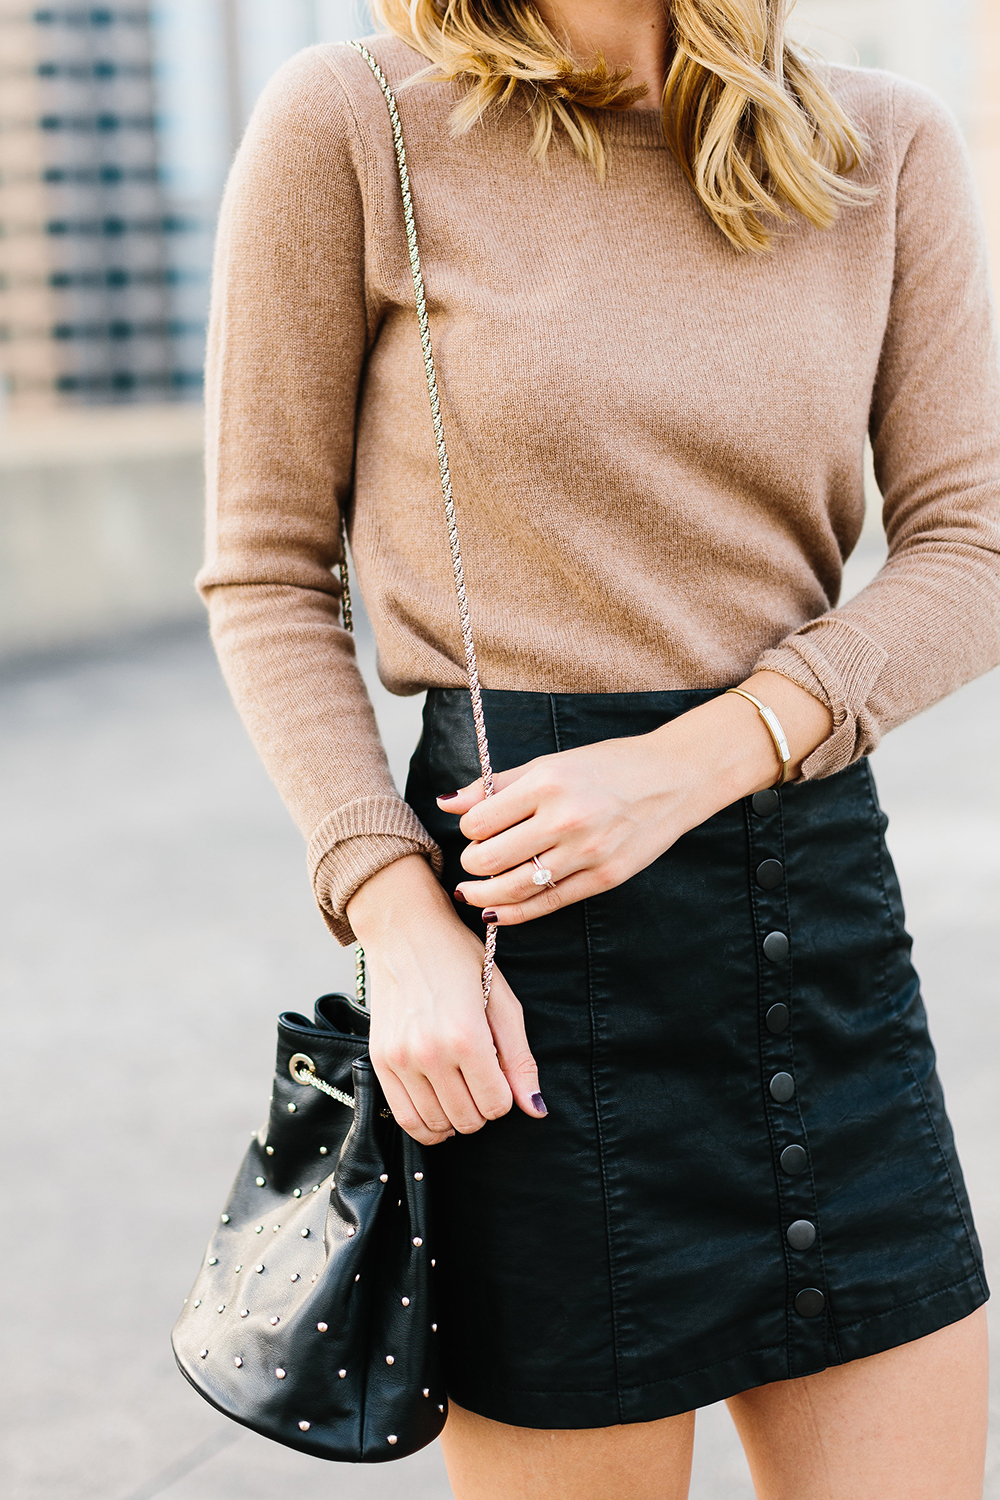 livvyland-blog-olivia-watson-free-people-vegan-leather-mini-skirt-cashmere-tan-sweater-sezane-studded-bucket-bag-1